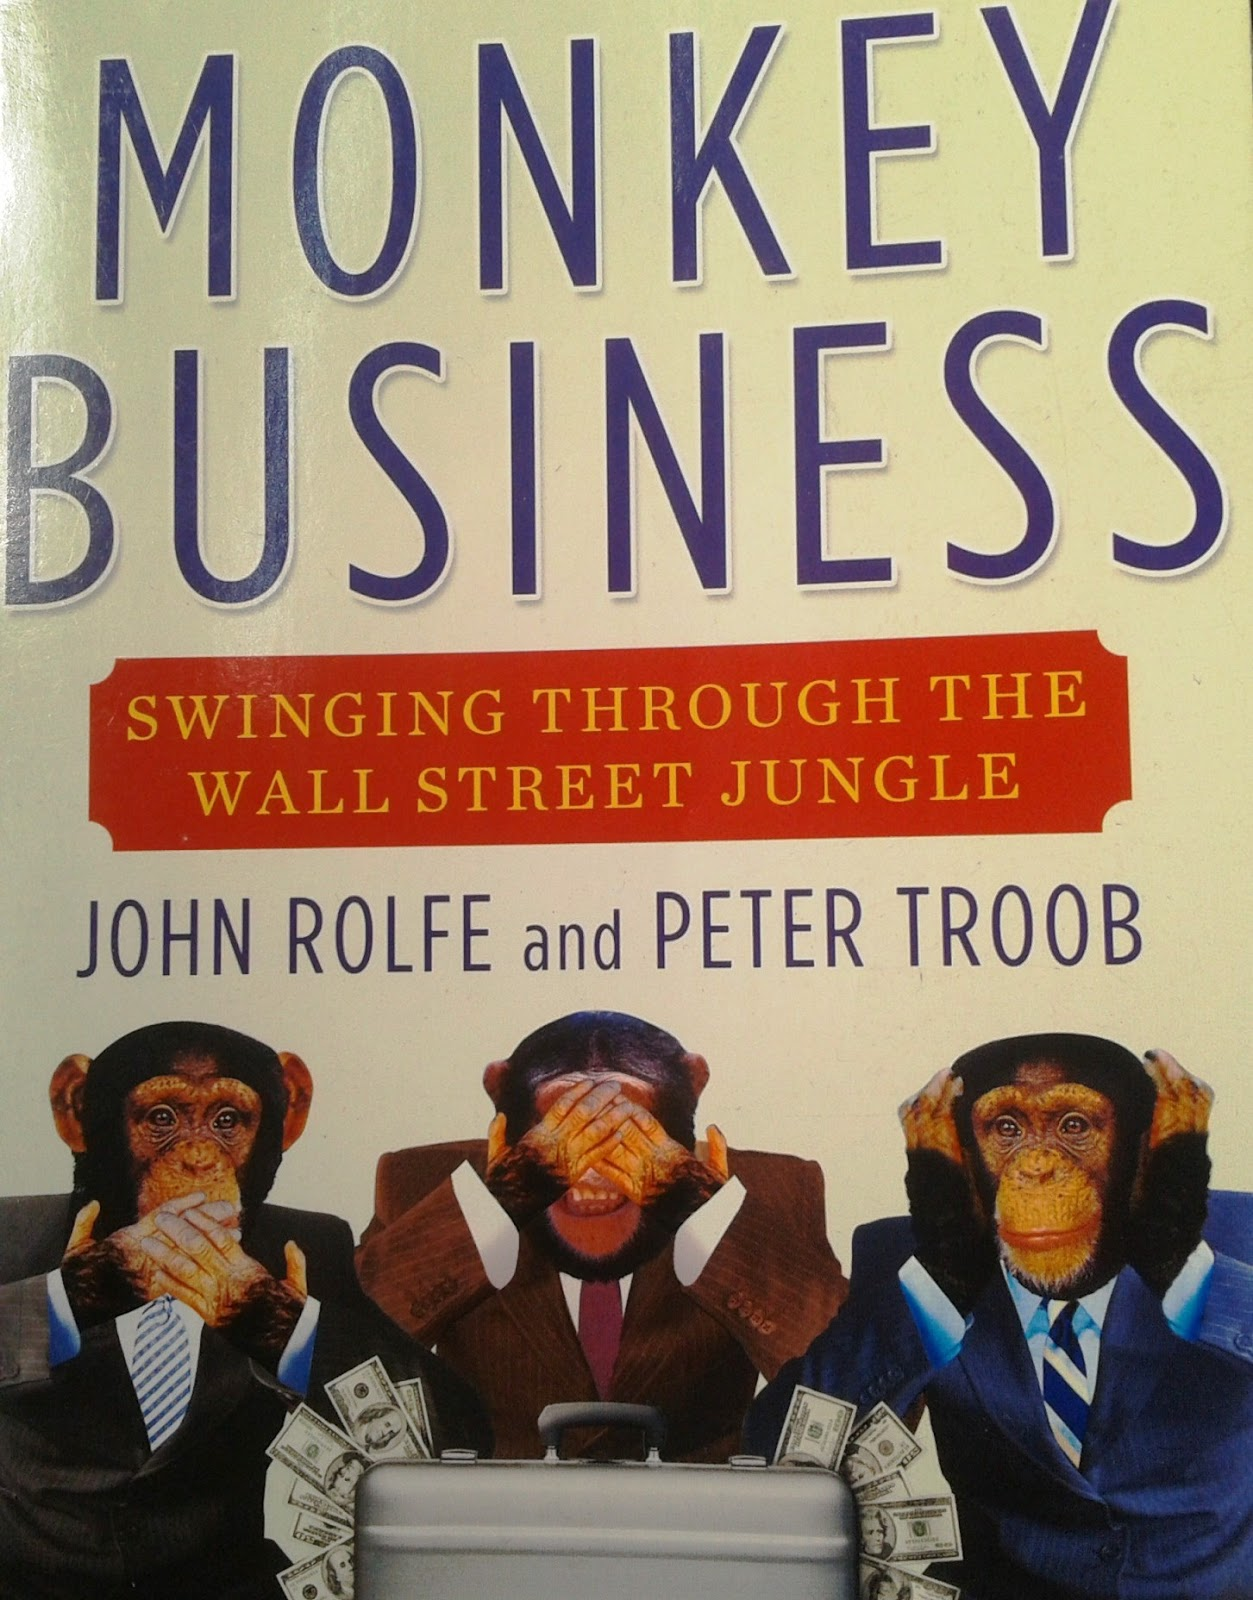 Monkey Business: Swinging Through The Wall Street Jungle by John Rolfe & Peter Troob